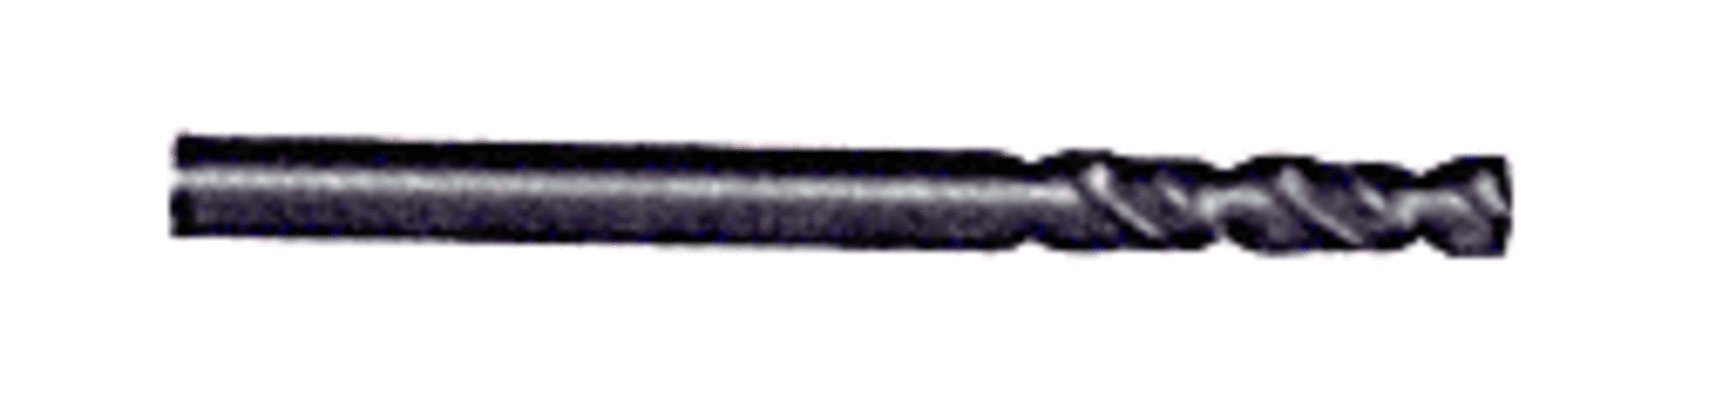 3/32'' Fractional Sized ''Stubby'' Drill Bit by CR Laurence (Image #2)